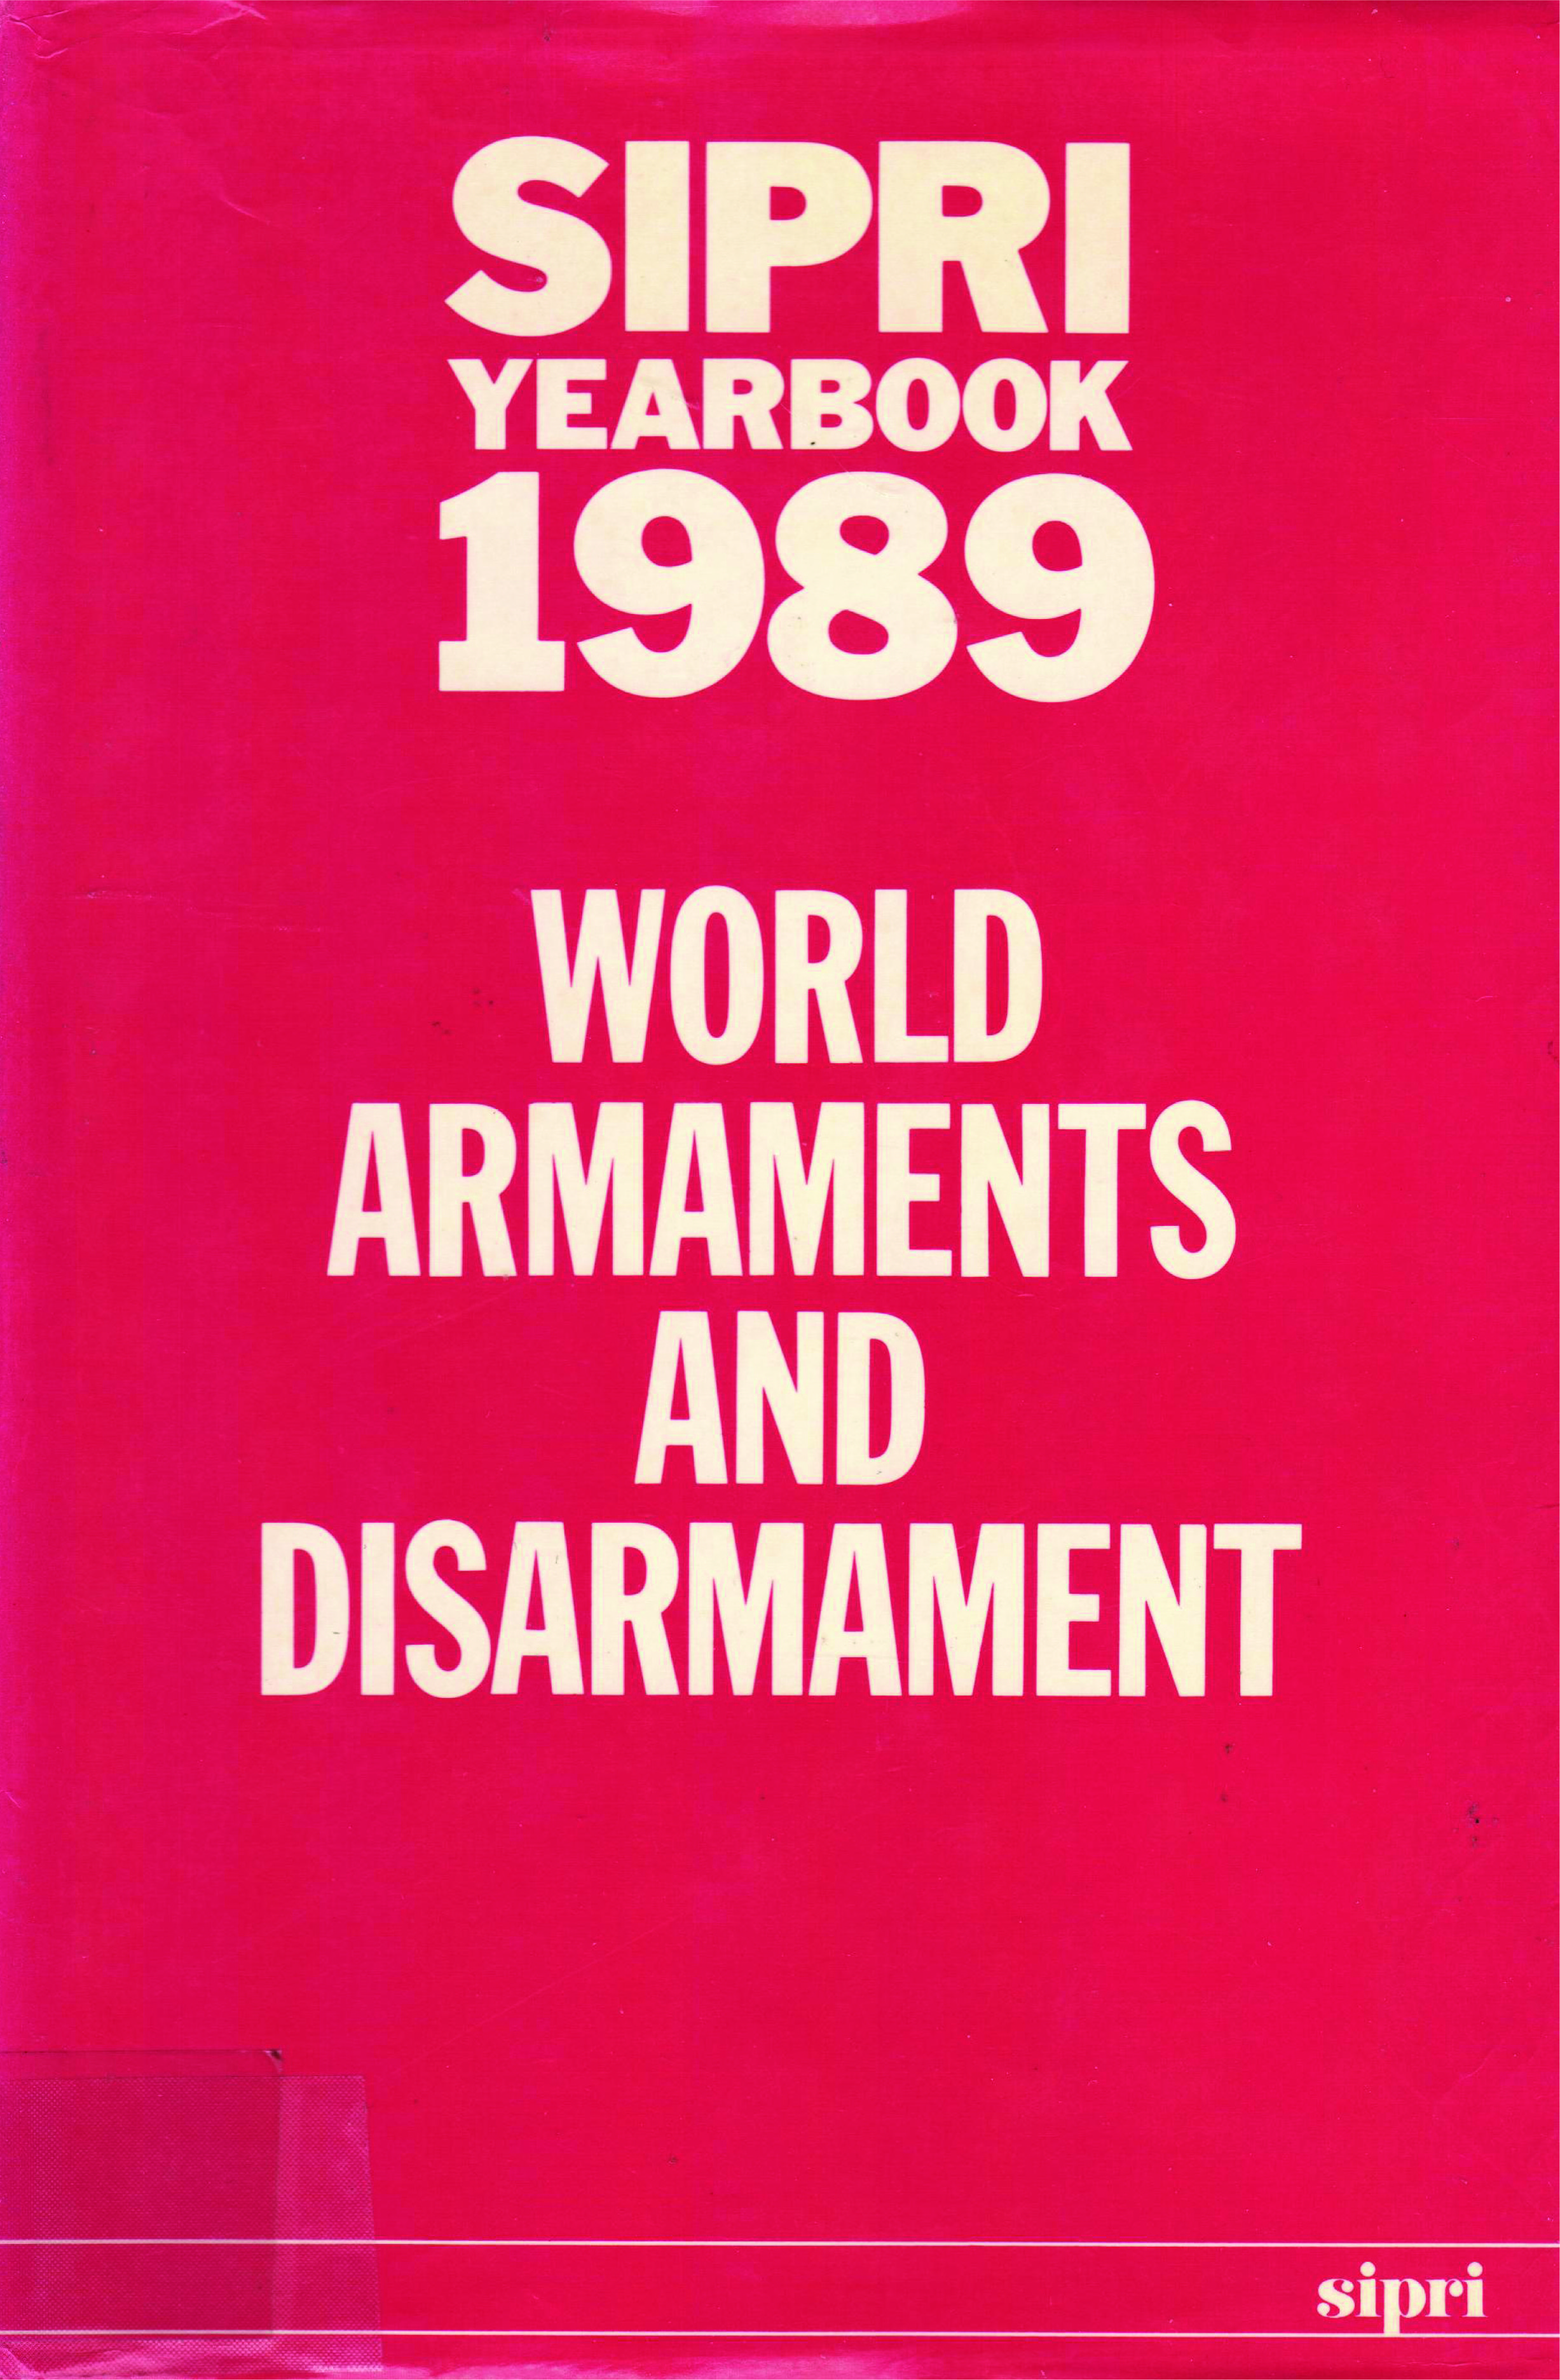 SIPRI yearbook 1989 cover